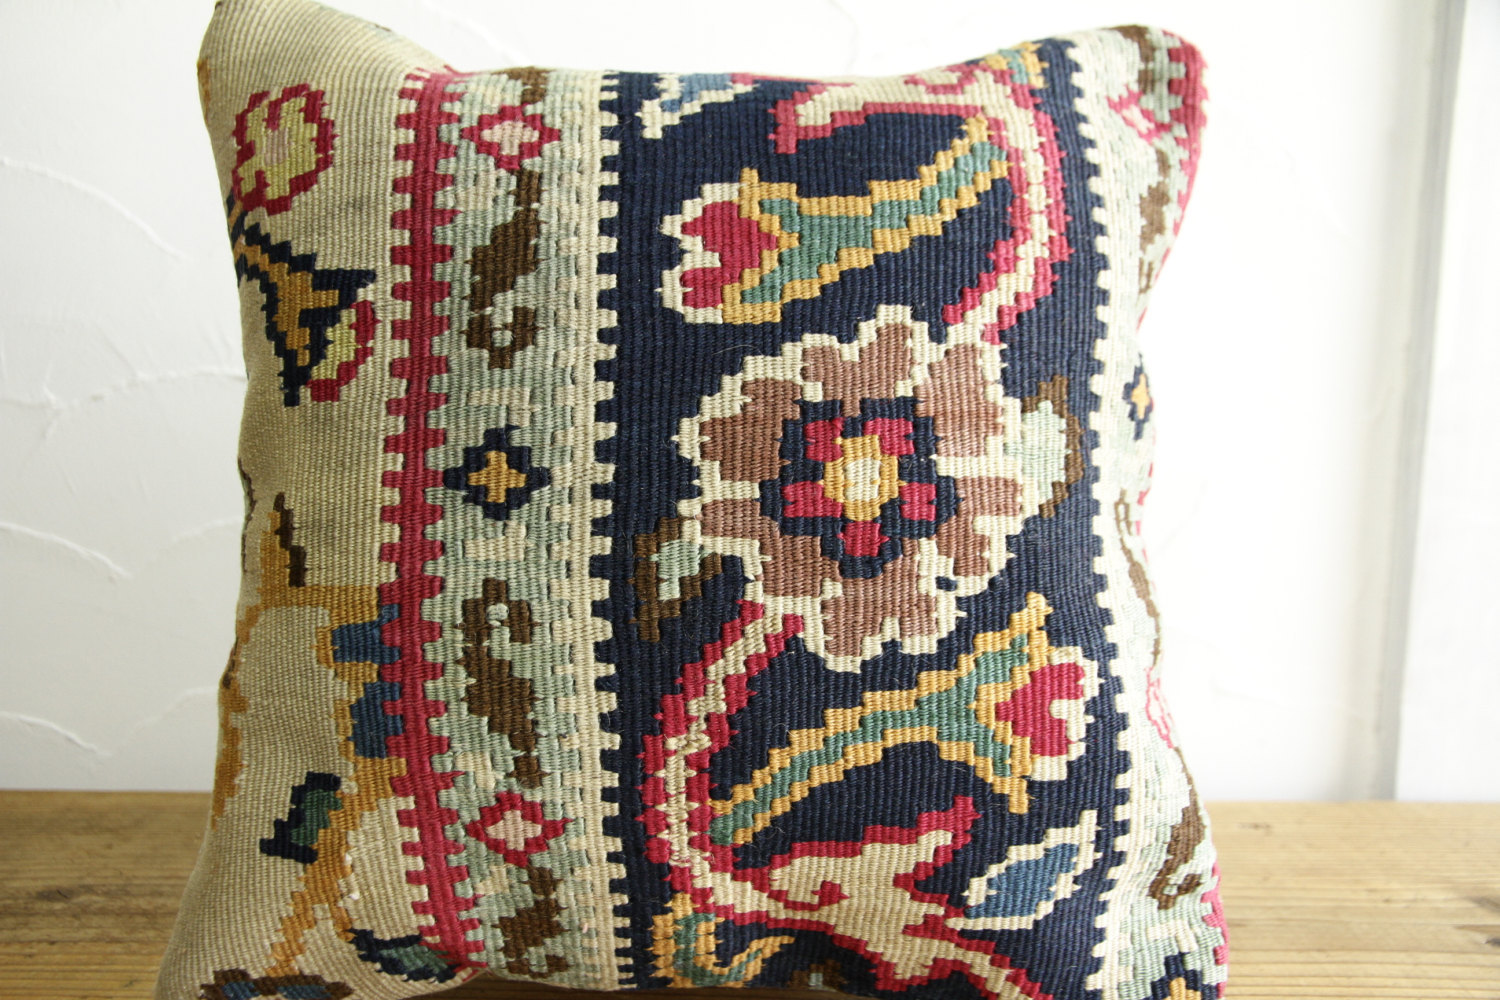 Kilim Pillows |16x16 | Decorative Pillows | 437 | Accent Pillows turkish pillow